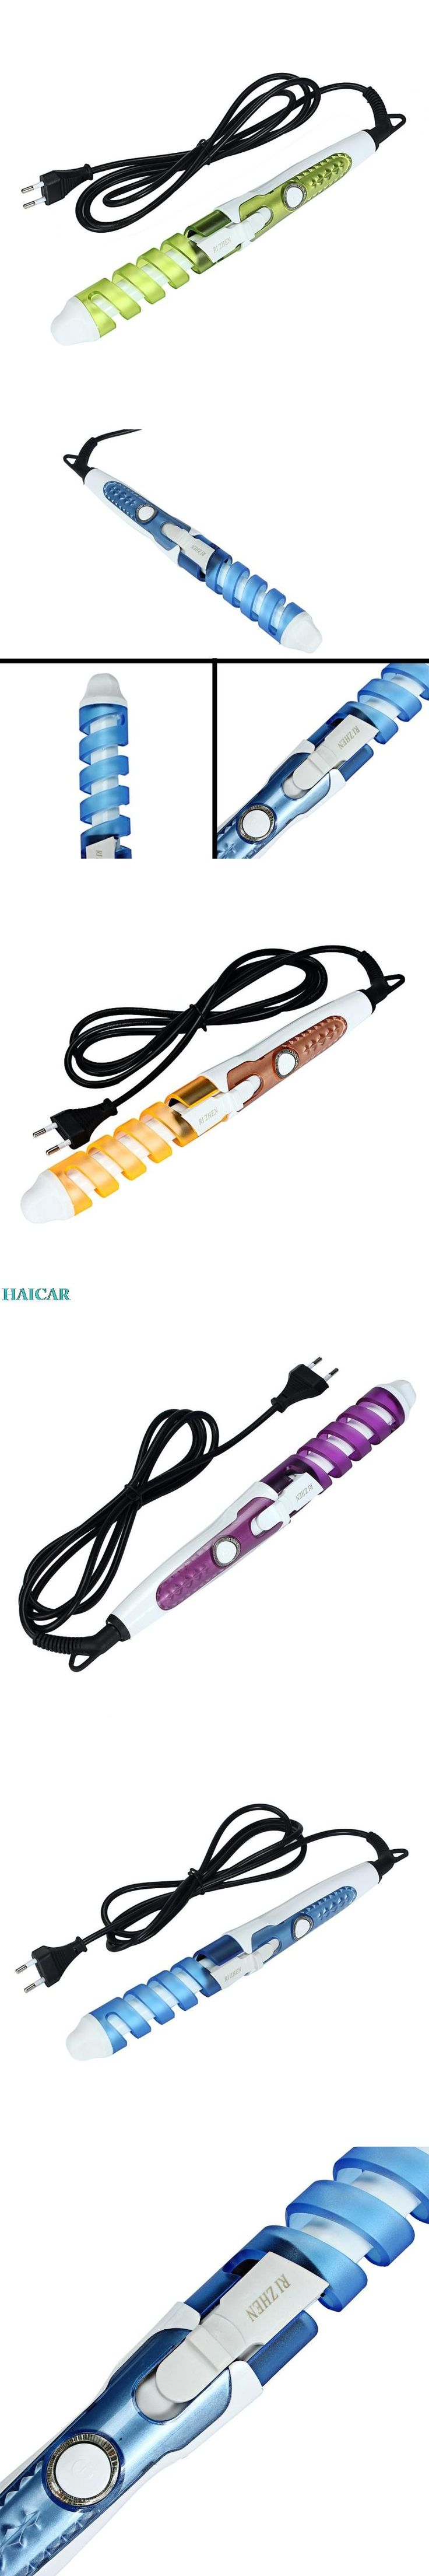 Magic Pro Perfect Hair Curlers Electric Curl Ceramic Spiral Hair Rollers Curling Iron Wand Salon Hair Styling Tools Styler #haircurler